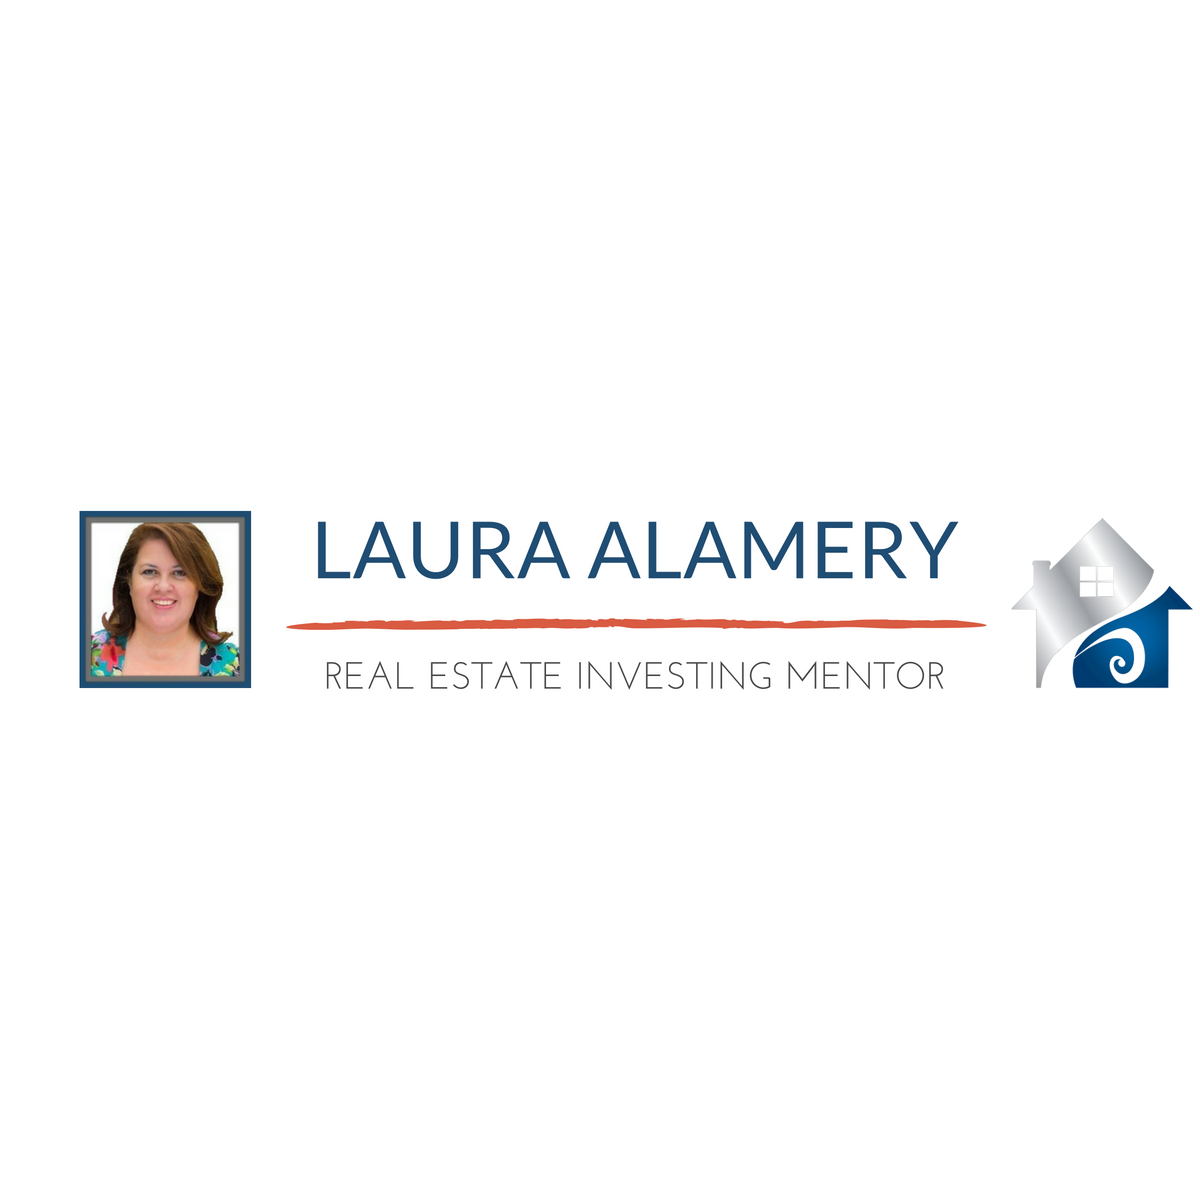 Laura Alamery Real Estate Investing Mentor